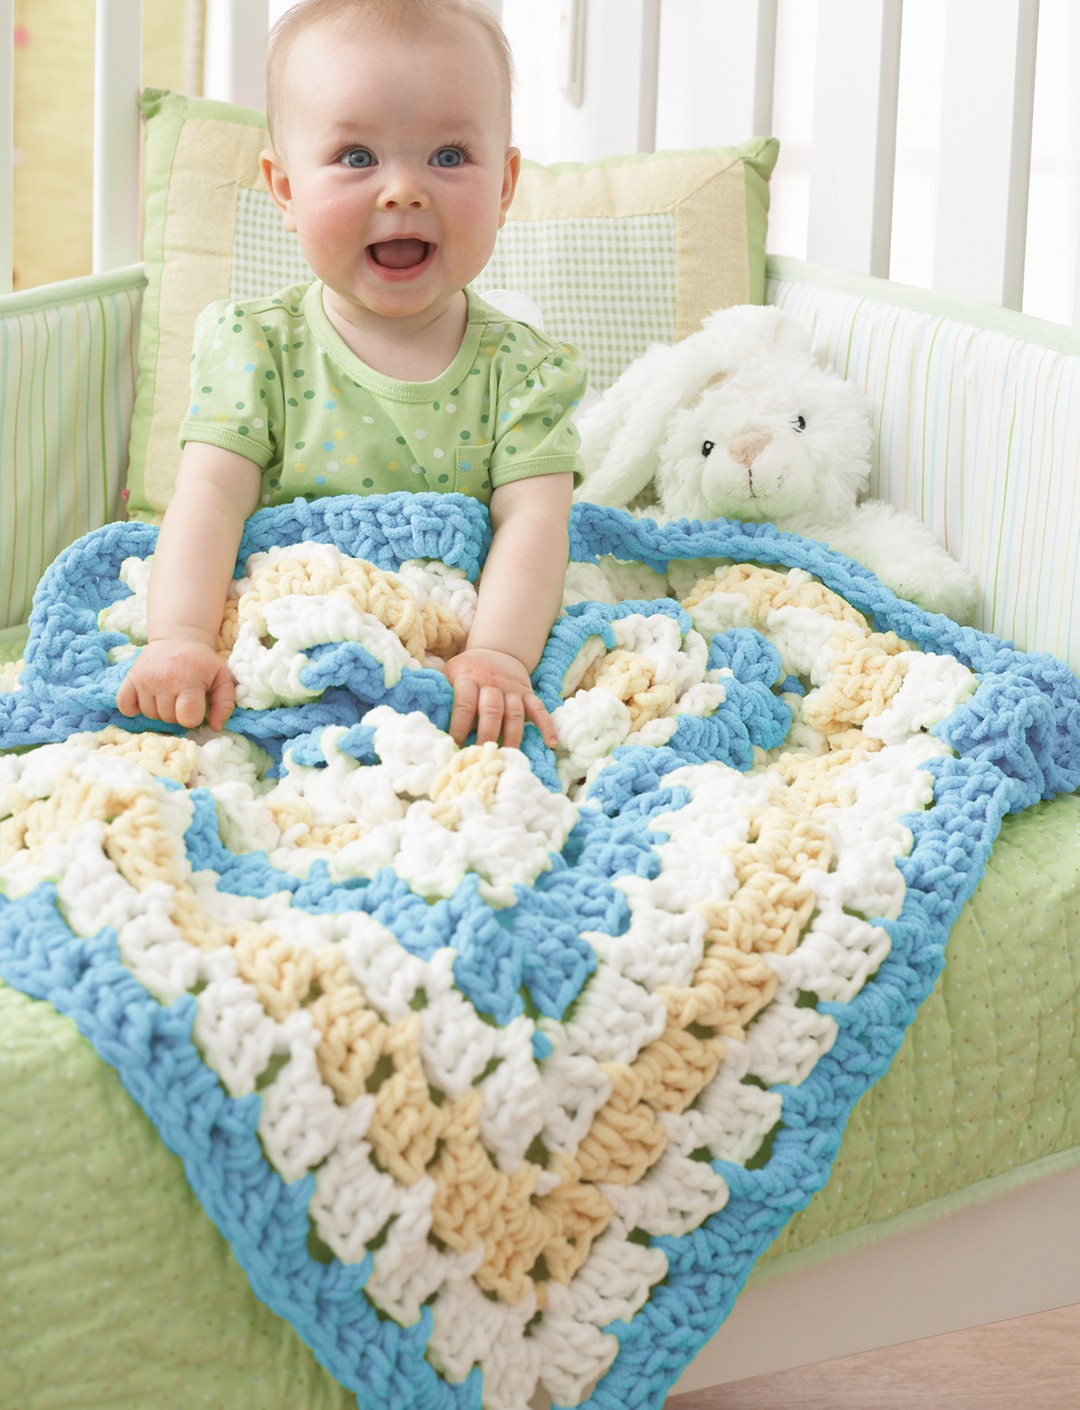 Awesome Bernat From the Middle Baby Blanket Crochet Pattern Bernat Baby Blanket Yarn Crochet Patterns Of Fresh 42 Models Bernat Baby Blanket Yarn Crochet Patterns